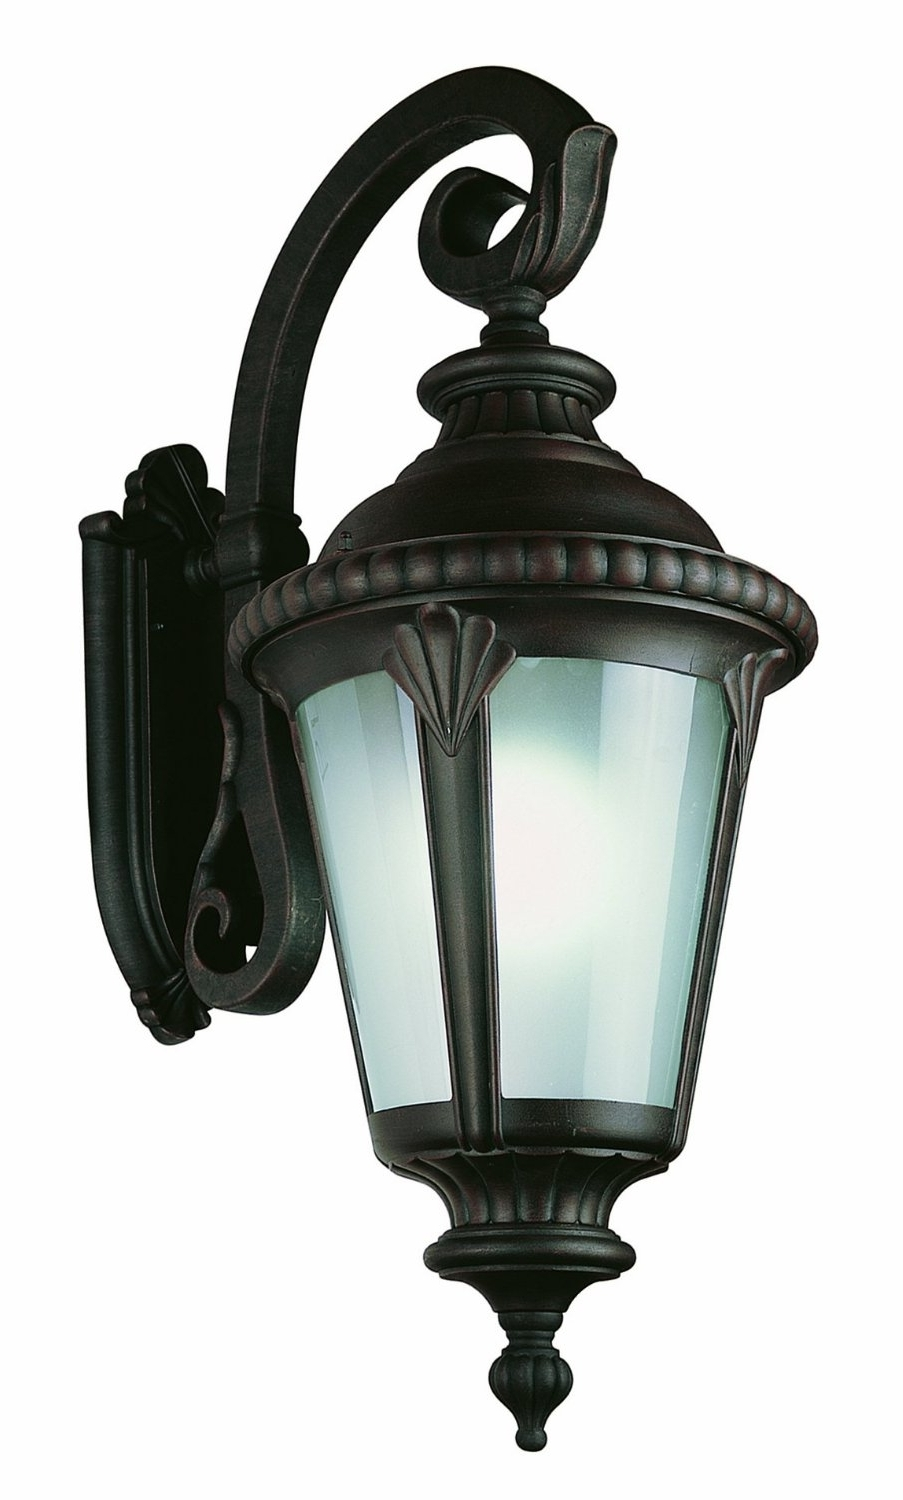 Most Recently Released Outdoor Wall Lantern By Transglobe Lighting Inside Lighting & Lamps: Trans Globe Lighting 4504 Bk 3 Light Post Lantern (View 10 of 20)